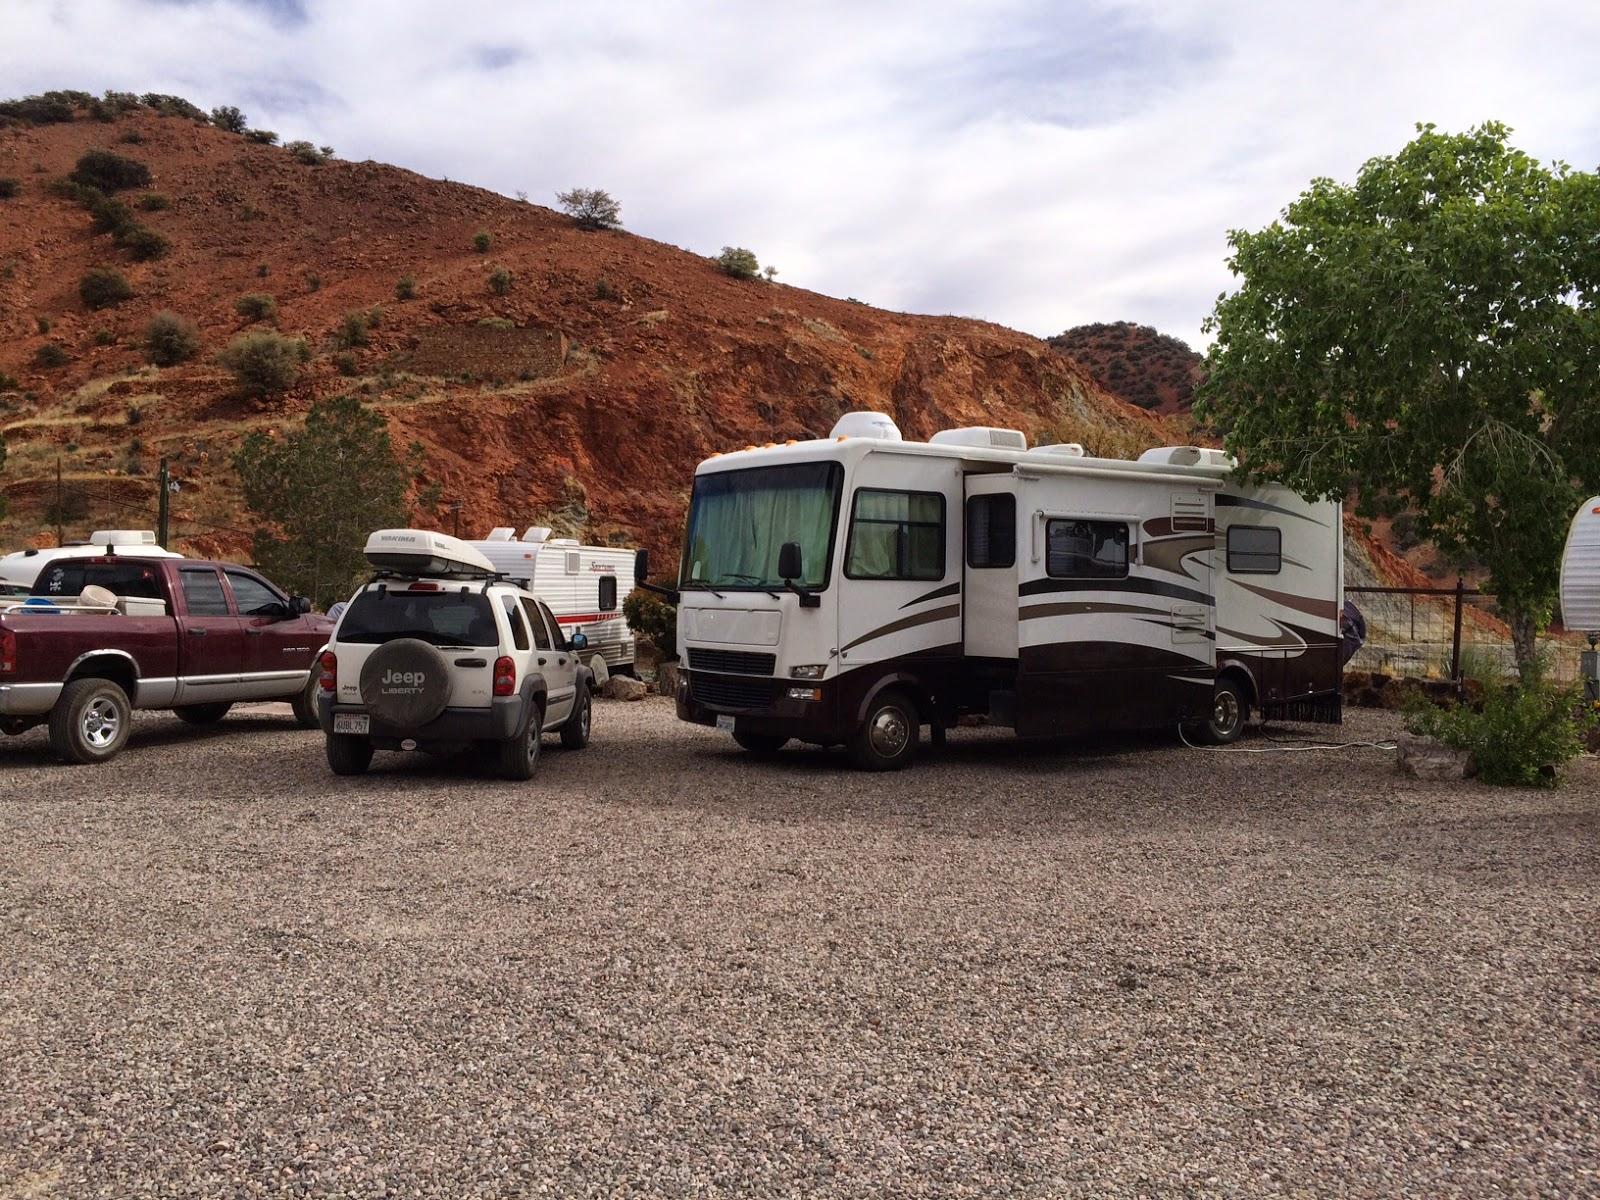 Our campsite at Queen Mine RV park in Bisbee